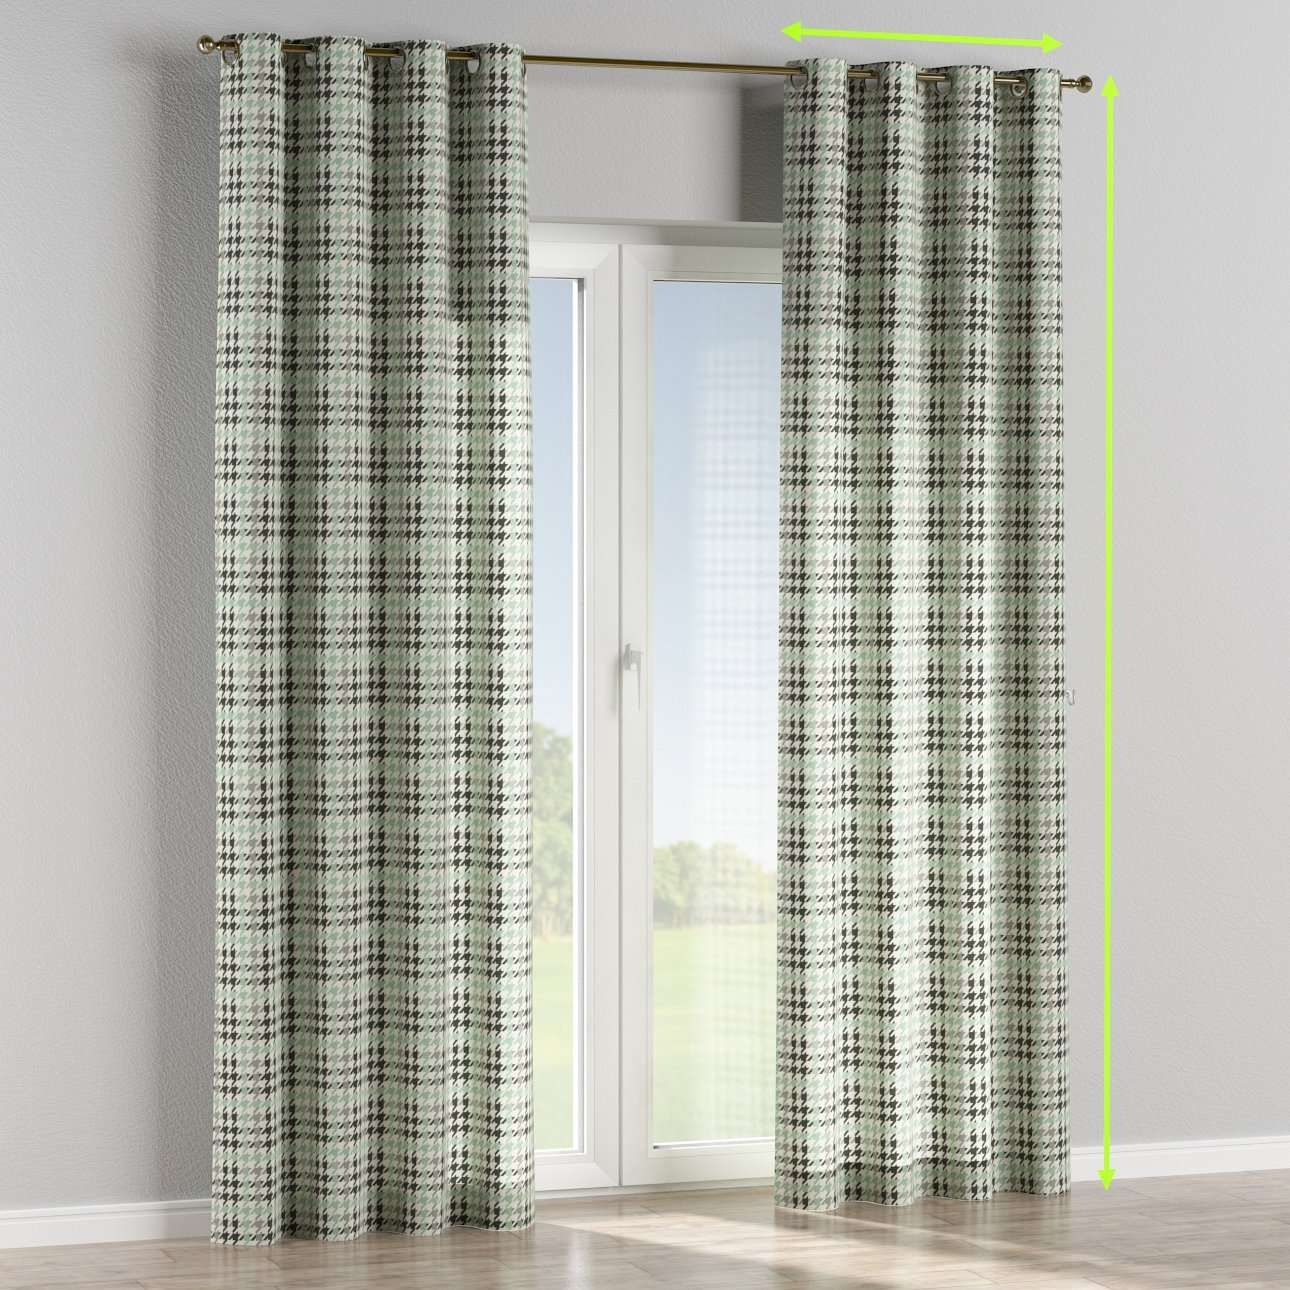 Eyelet lined curtains in collection Brooklyn, fabric: 137-77